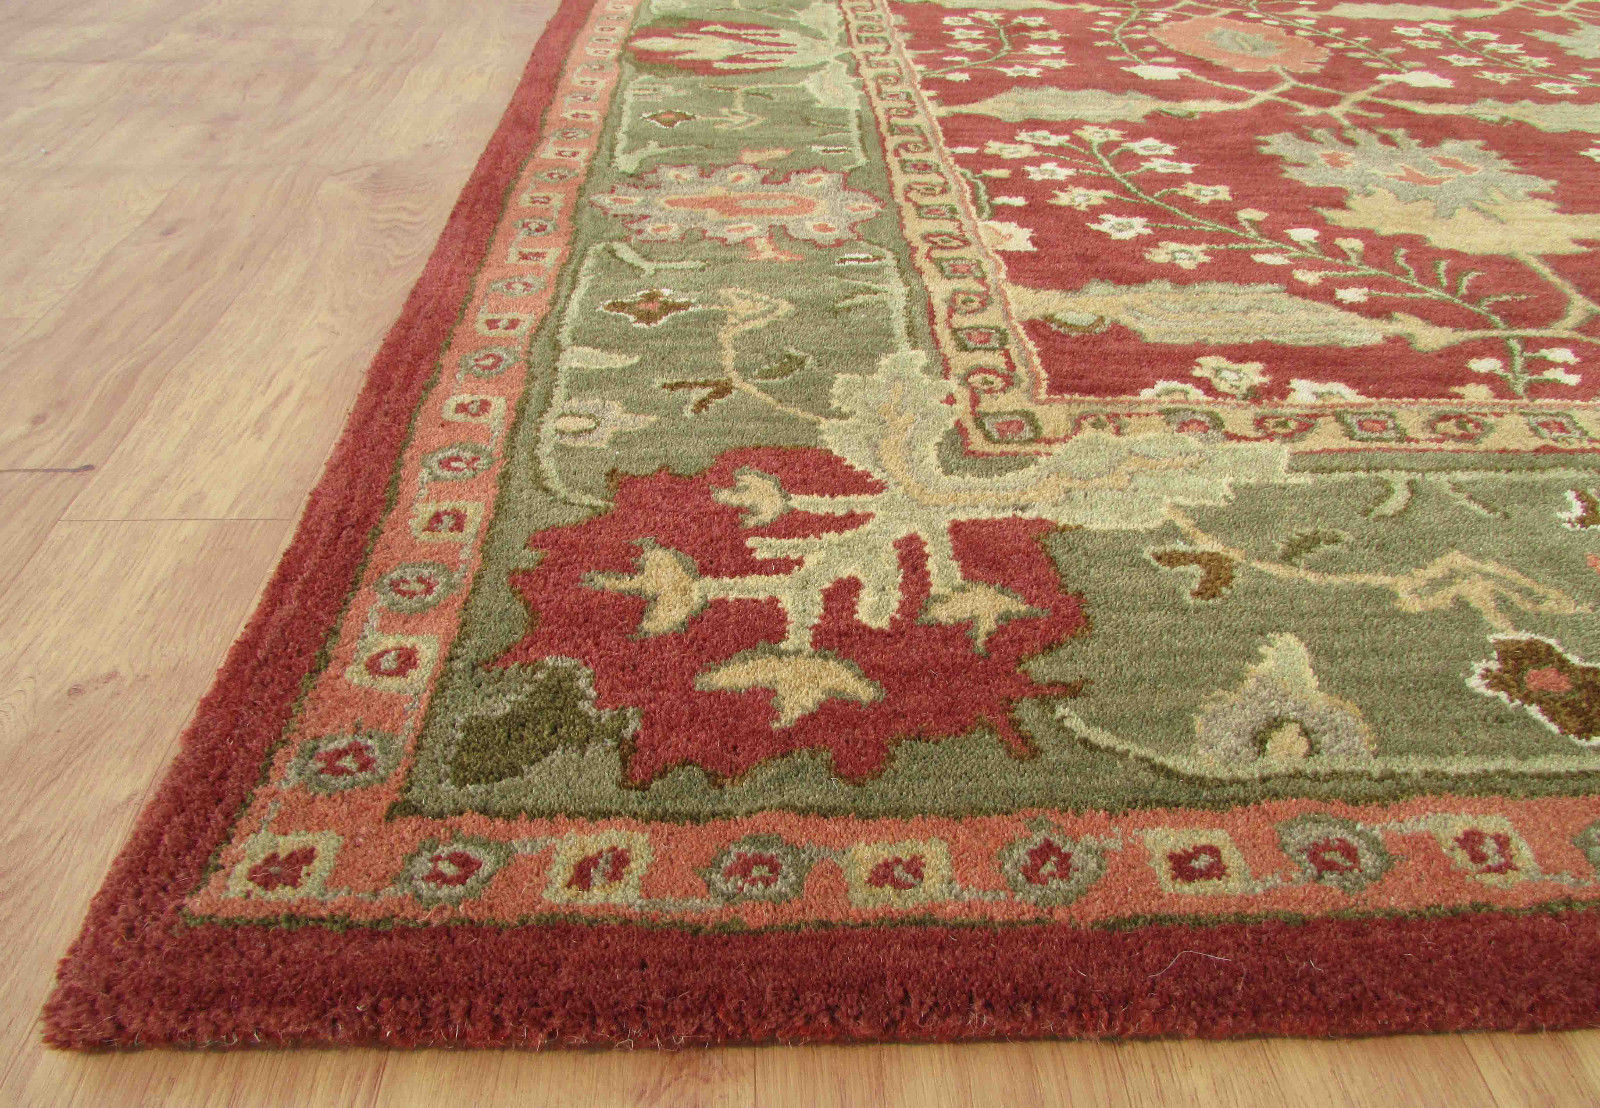 Large Area Rugs For Sale Rugs For Sale Cheap Online Ebay